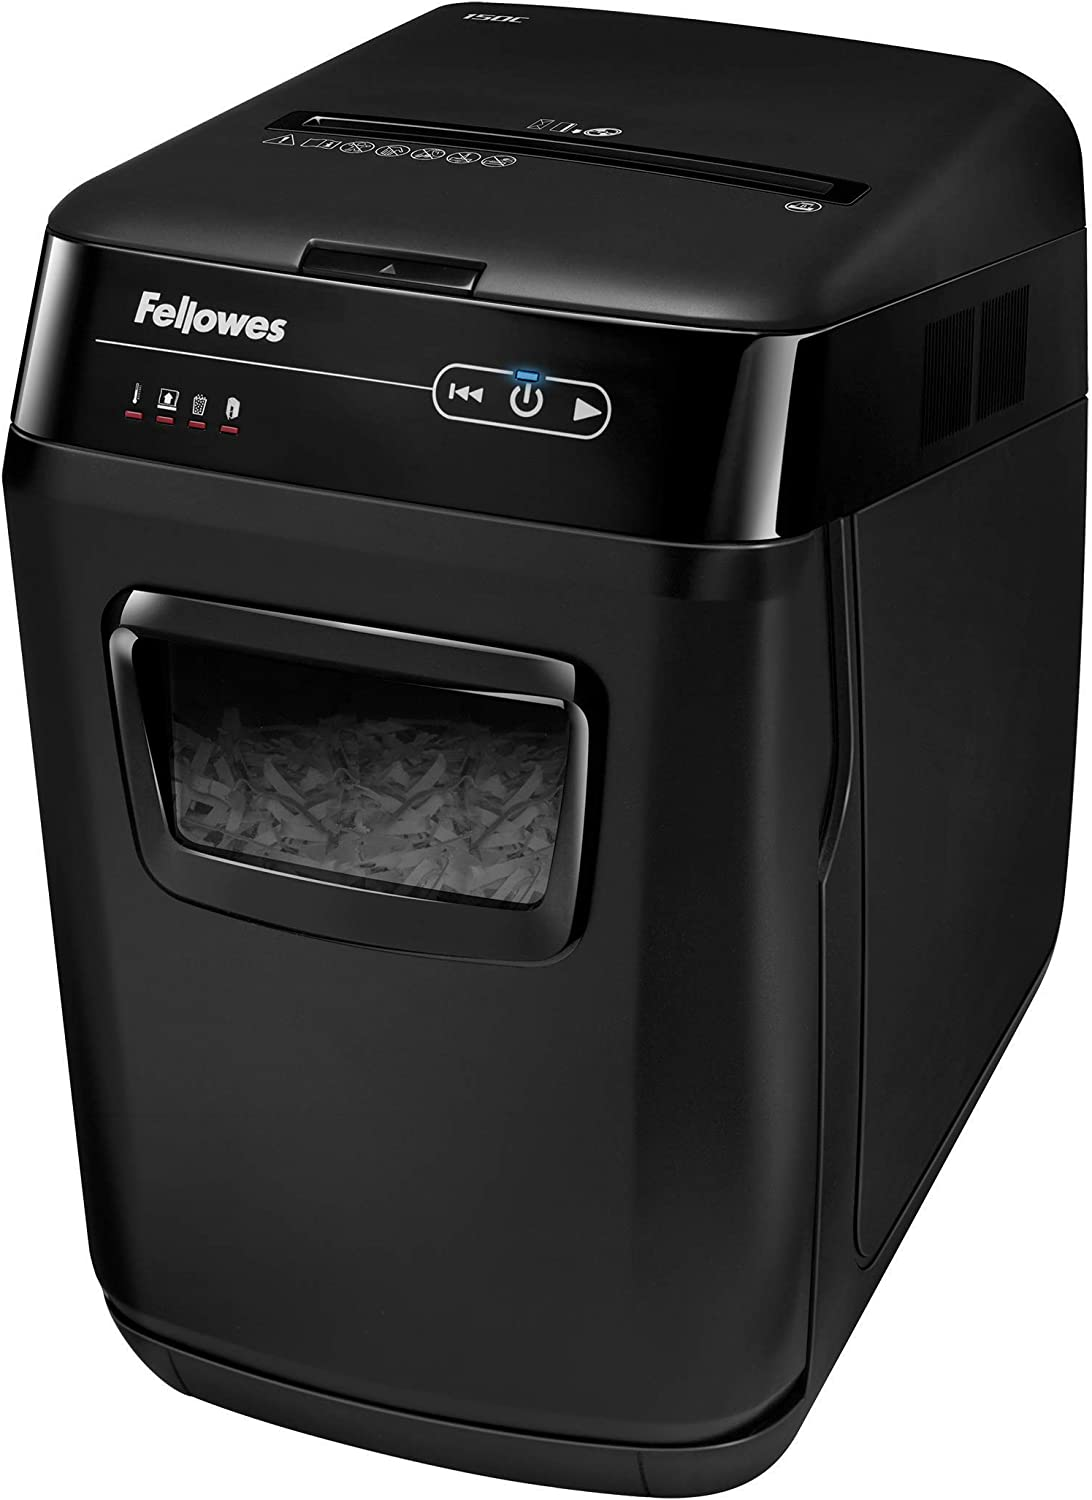 Fellowes AutoMax 150C 150-Sheet Cross-Cut Auto Feed Shredder with Jam Protection for Hands-Free Shredding (4680001)